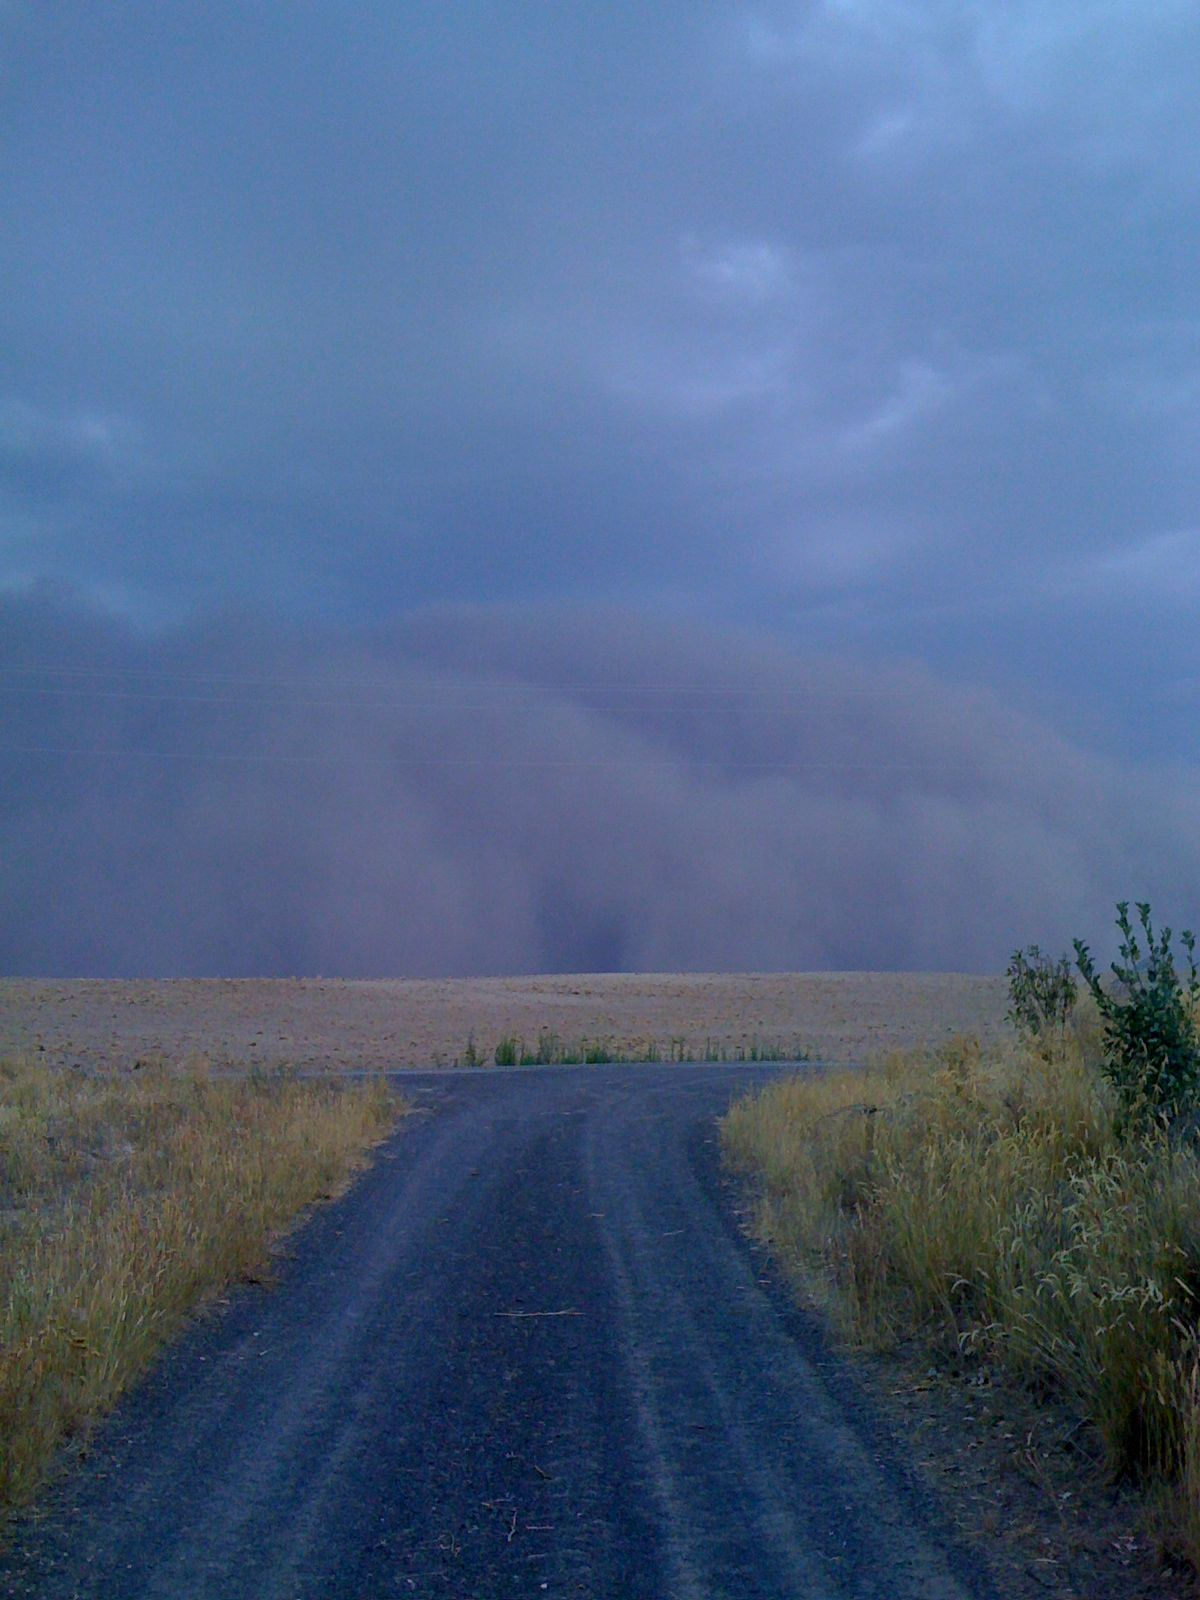 Incredible view of impending wall of dust from driveway